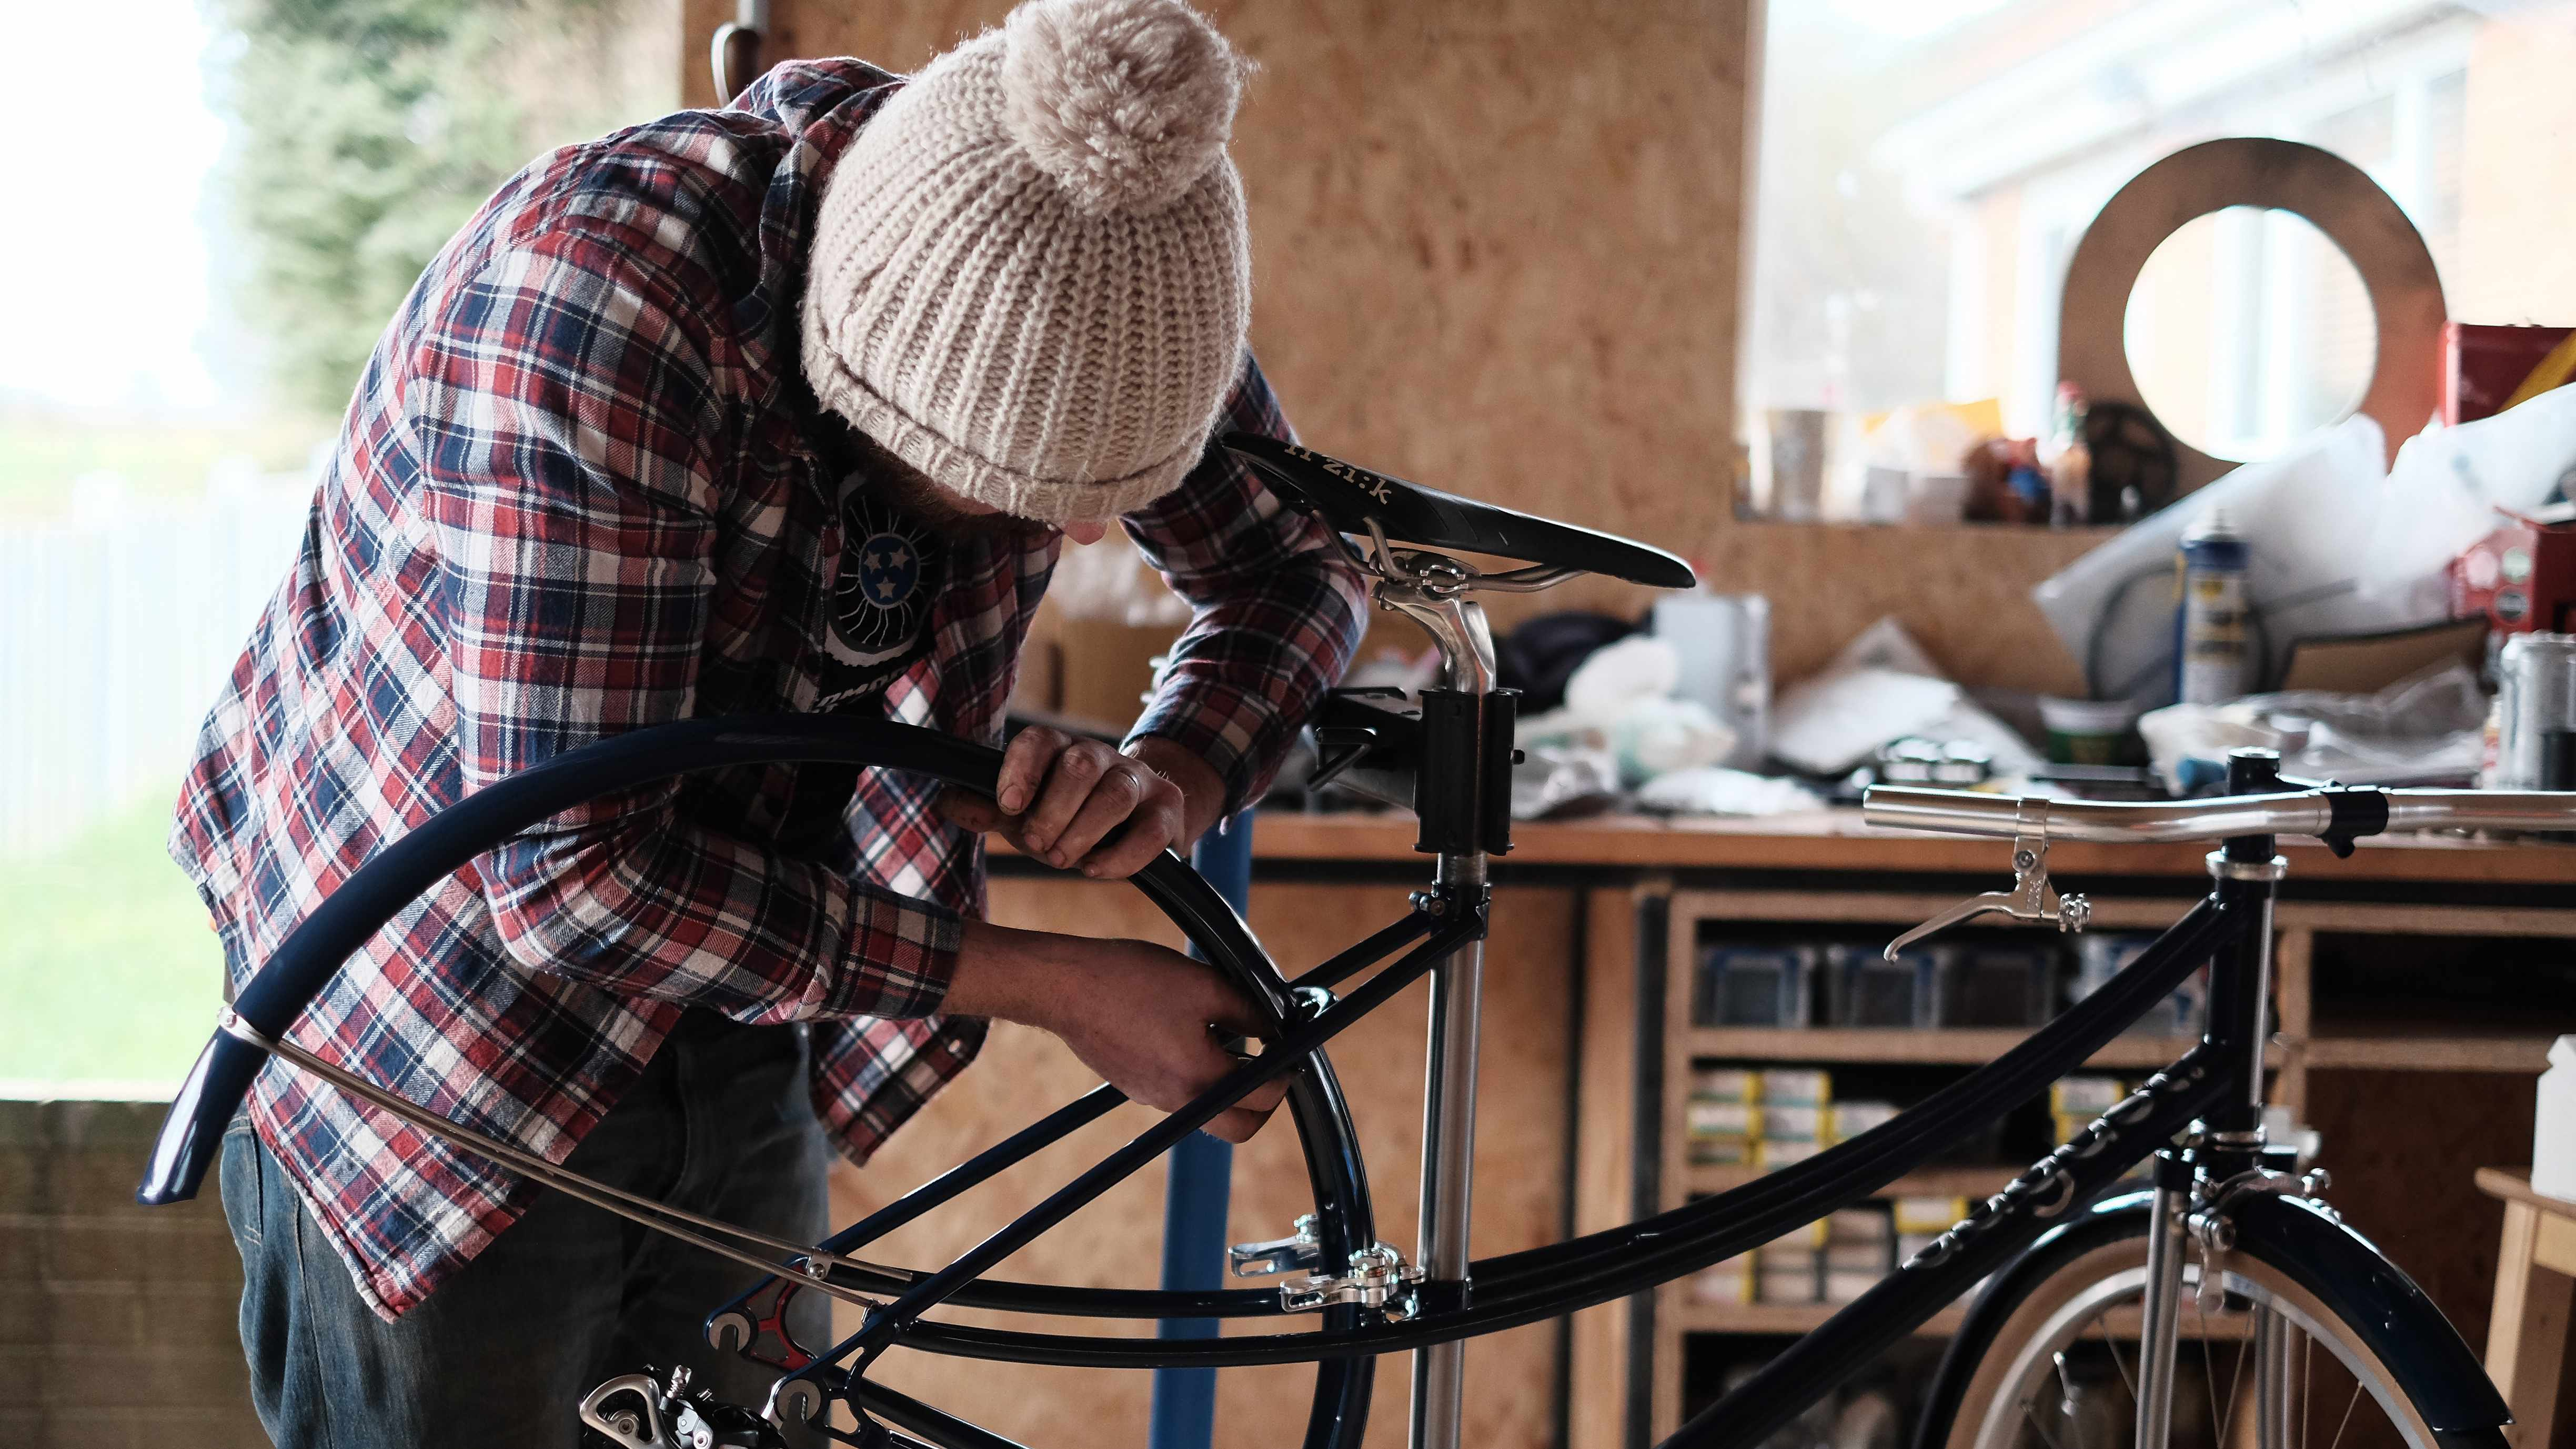 The limited edition bikes were hand built by Gavin Buxton of August Bicycles